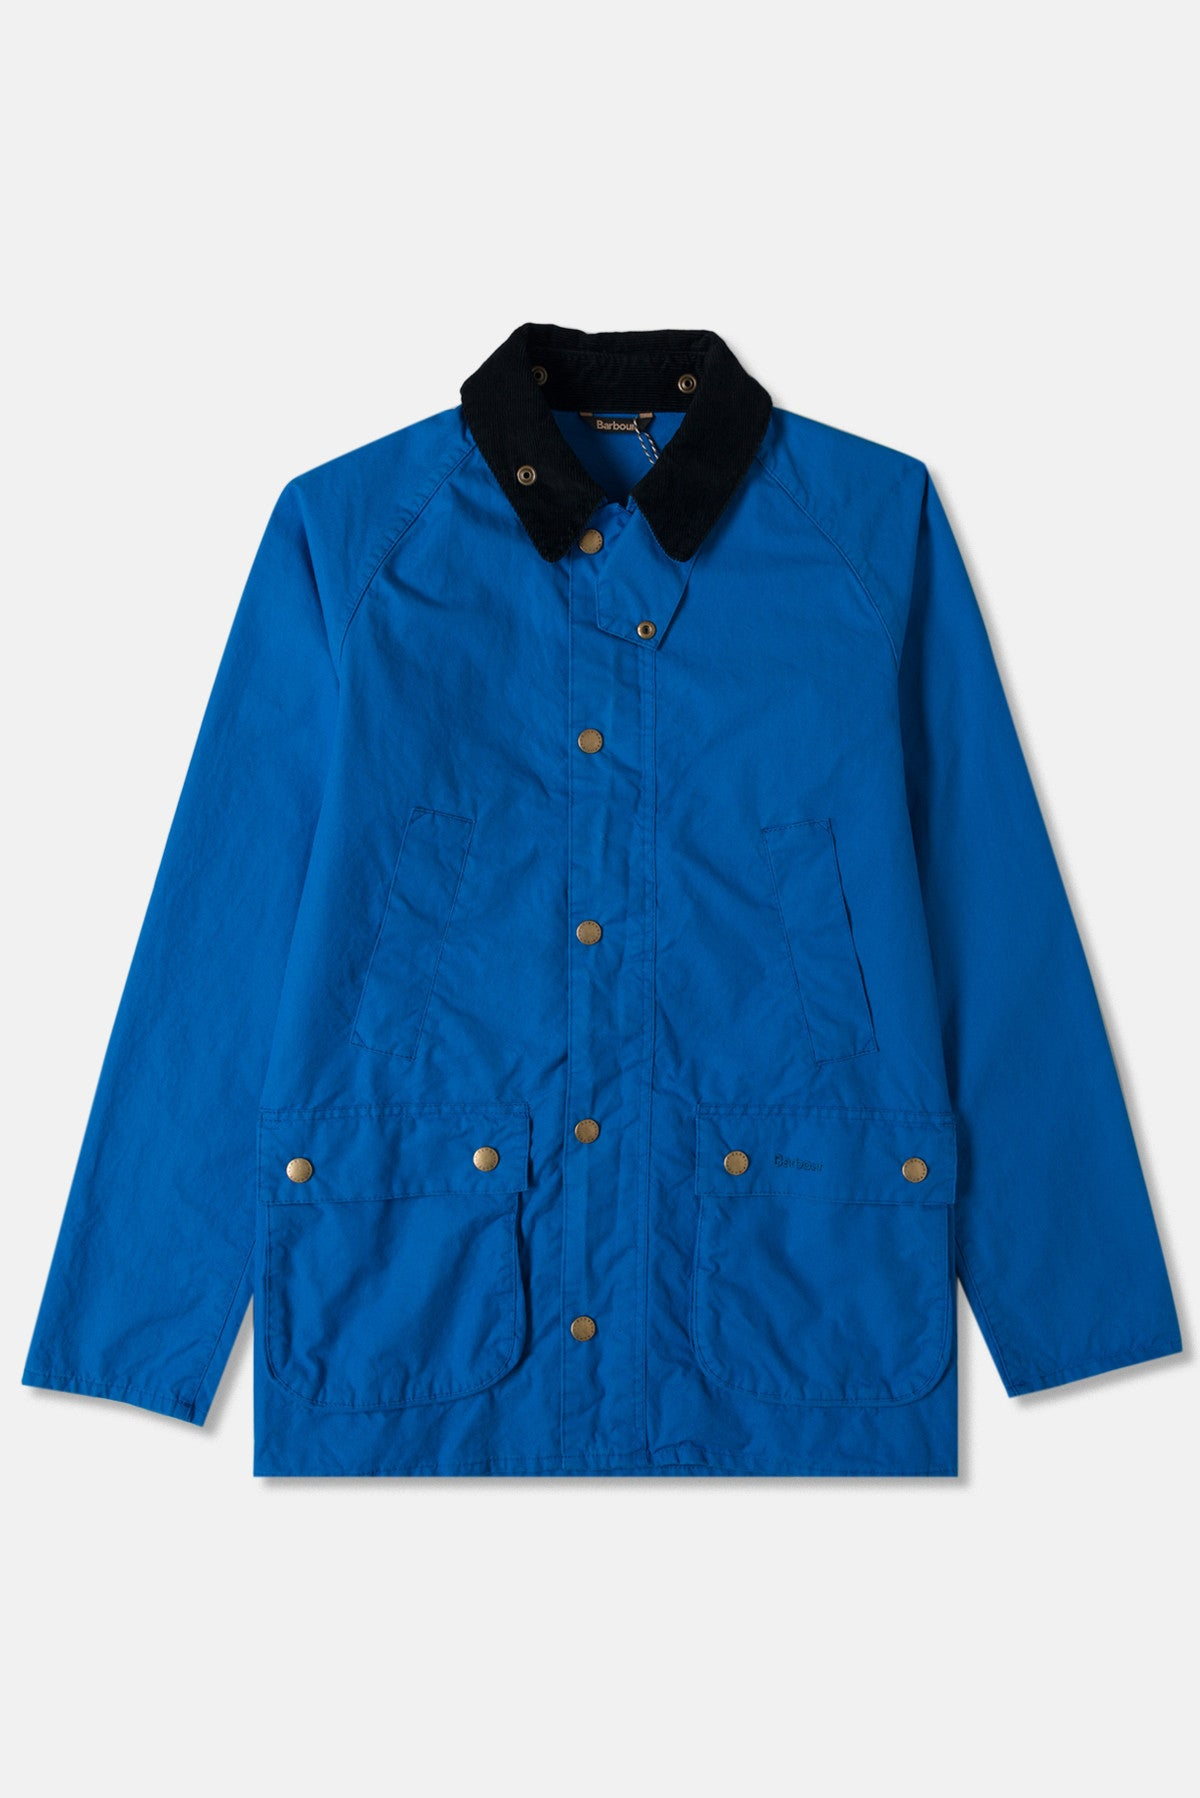 Available Bedale From Jacket Barbour Priory Washed A0ntwBnaq